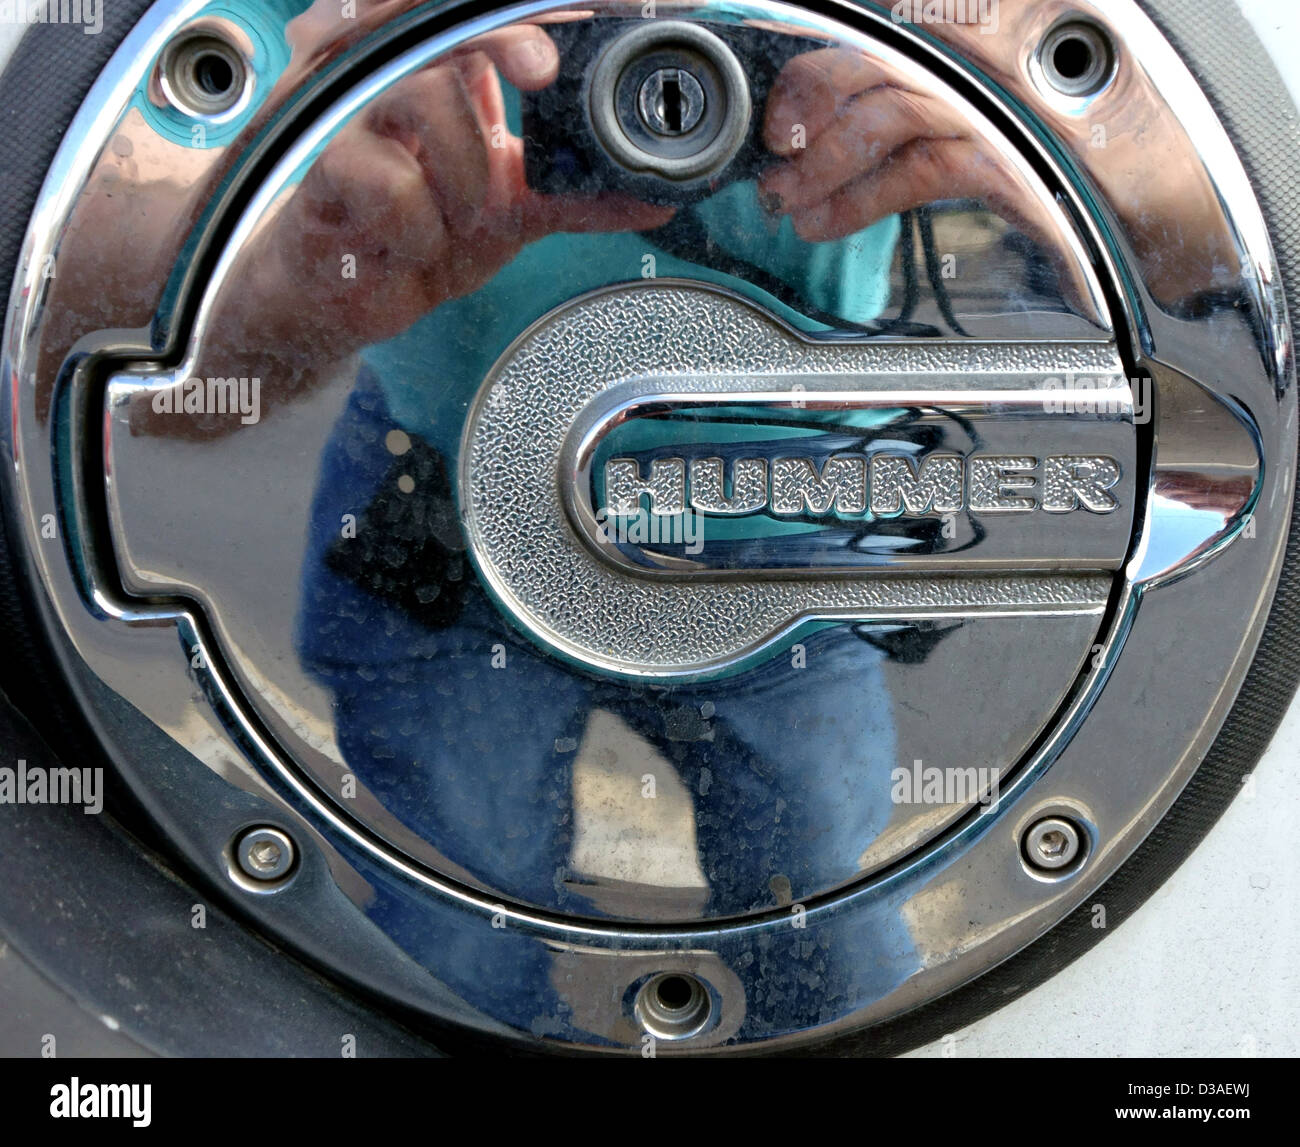 Fuel cap on Hummer 4x4 vehicle, Tenerife, Canary Islands - Stock Image